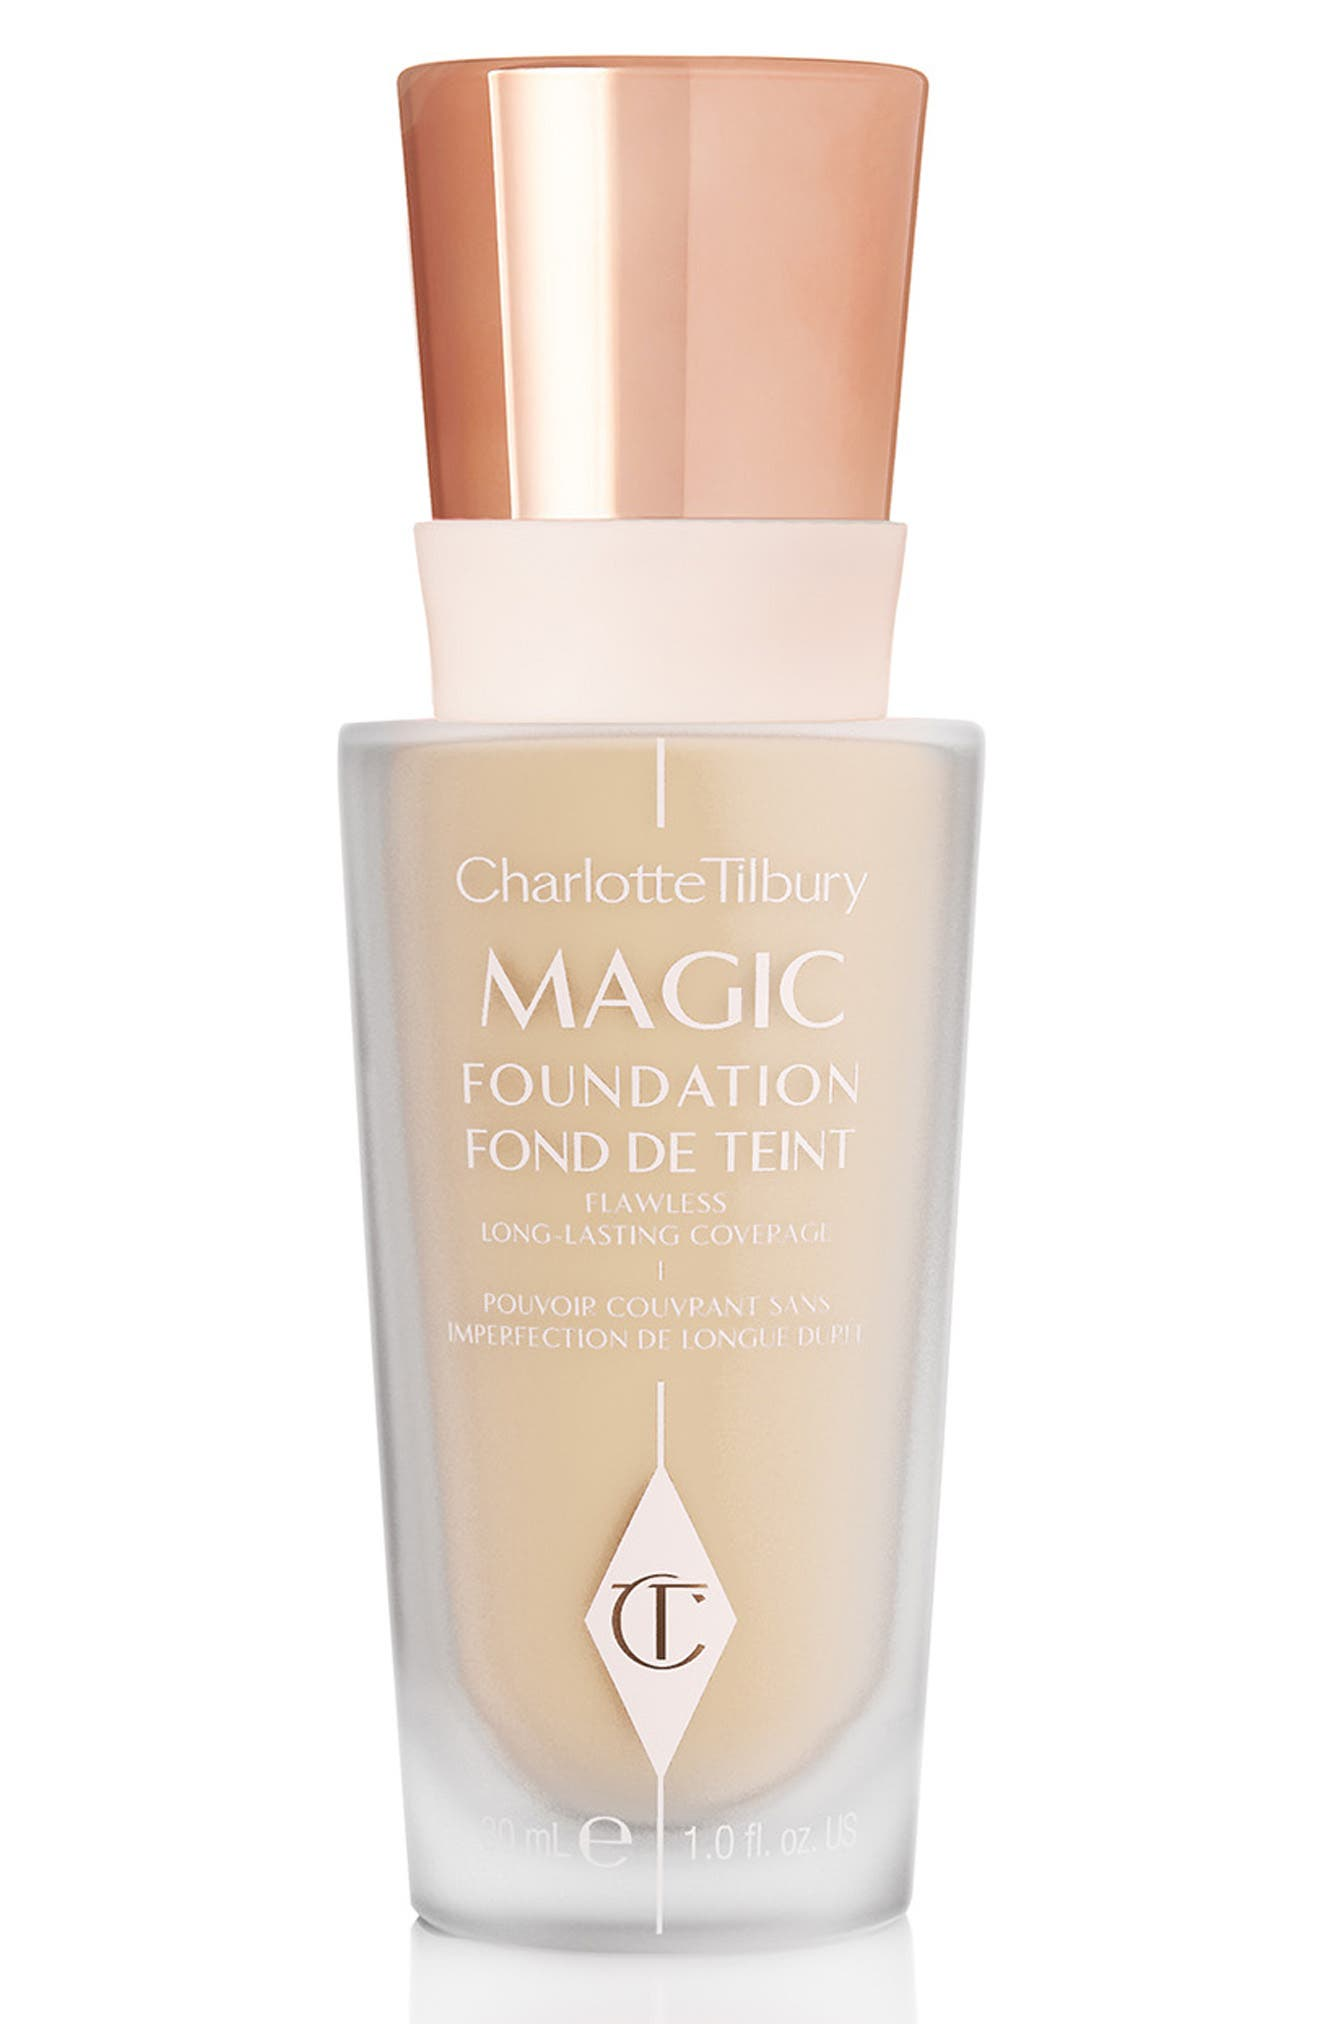 CHARLOTTE TILBURY MAGIC FOUNDATION BROAD SPECTRUM SPF 15 - 4.5 MEDIUM